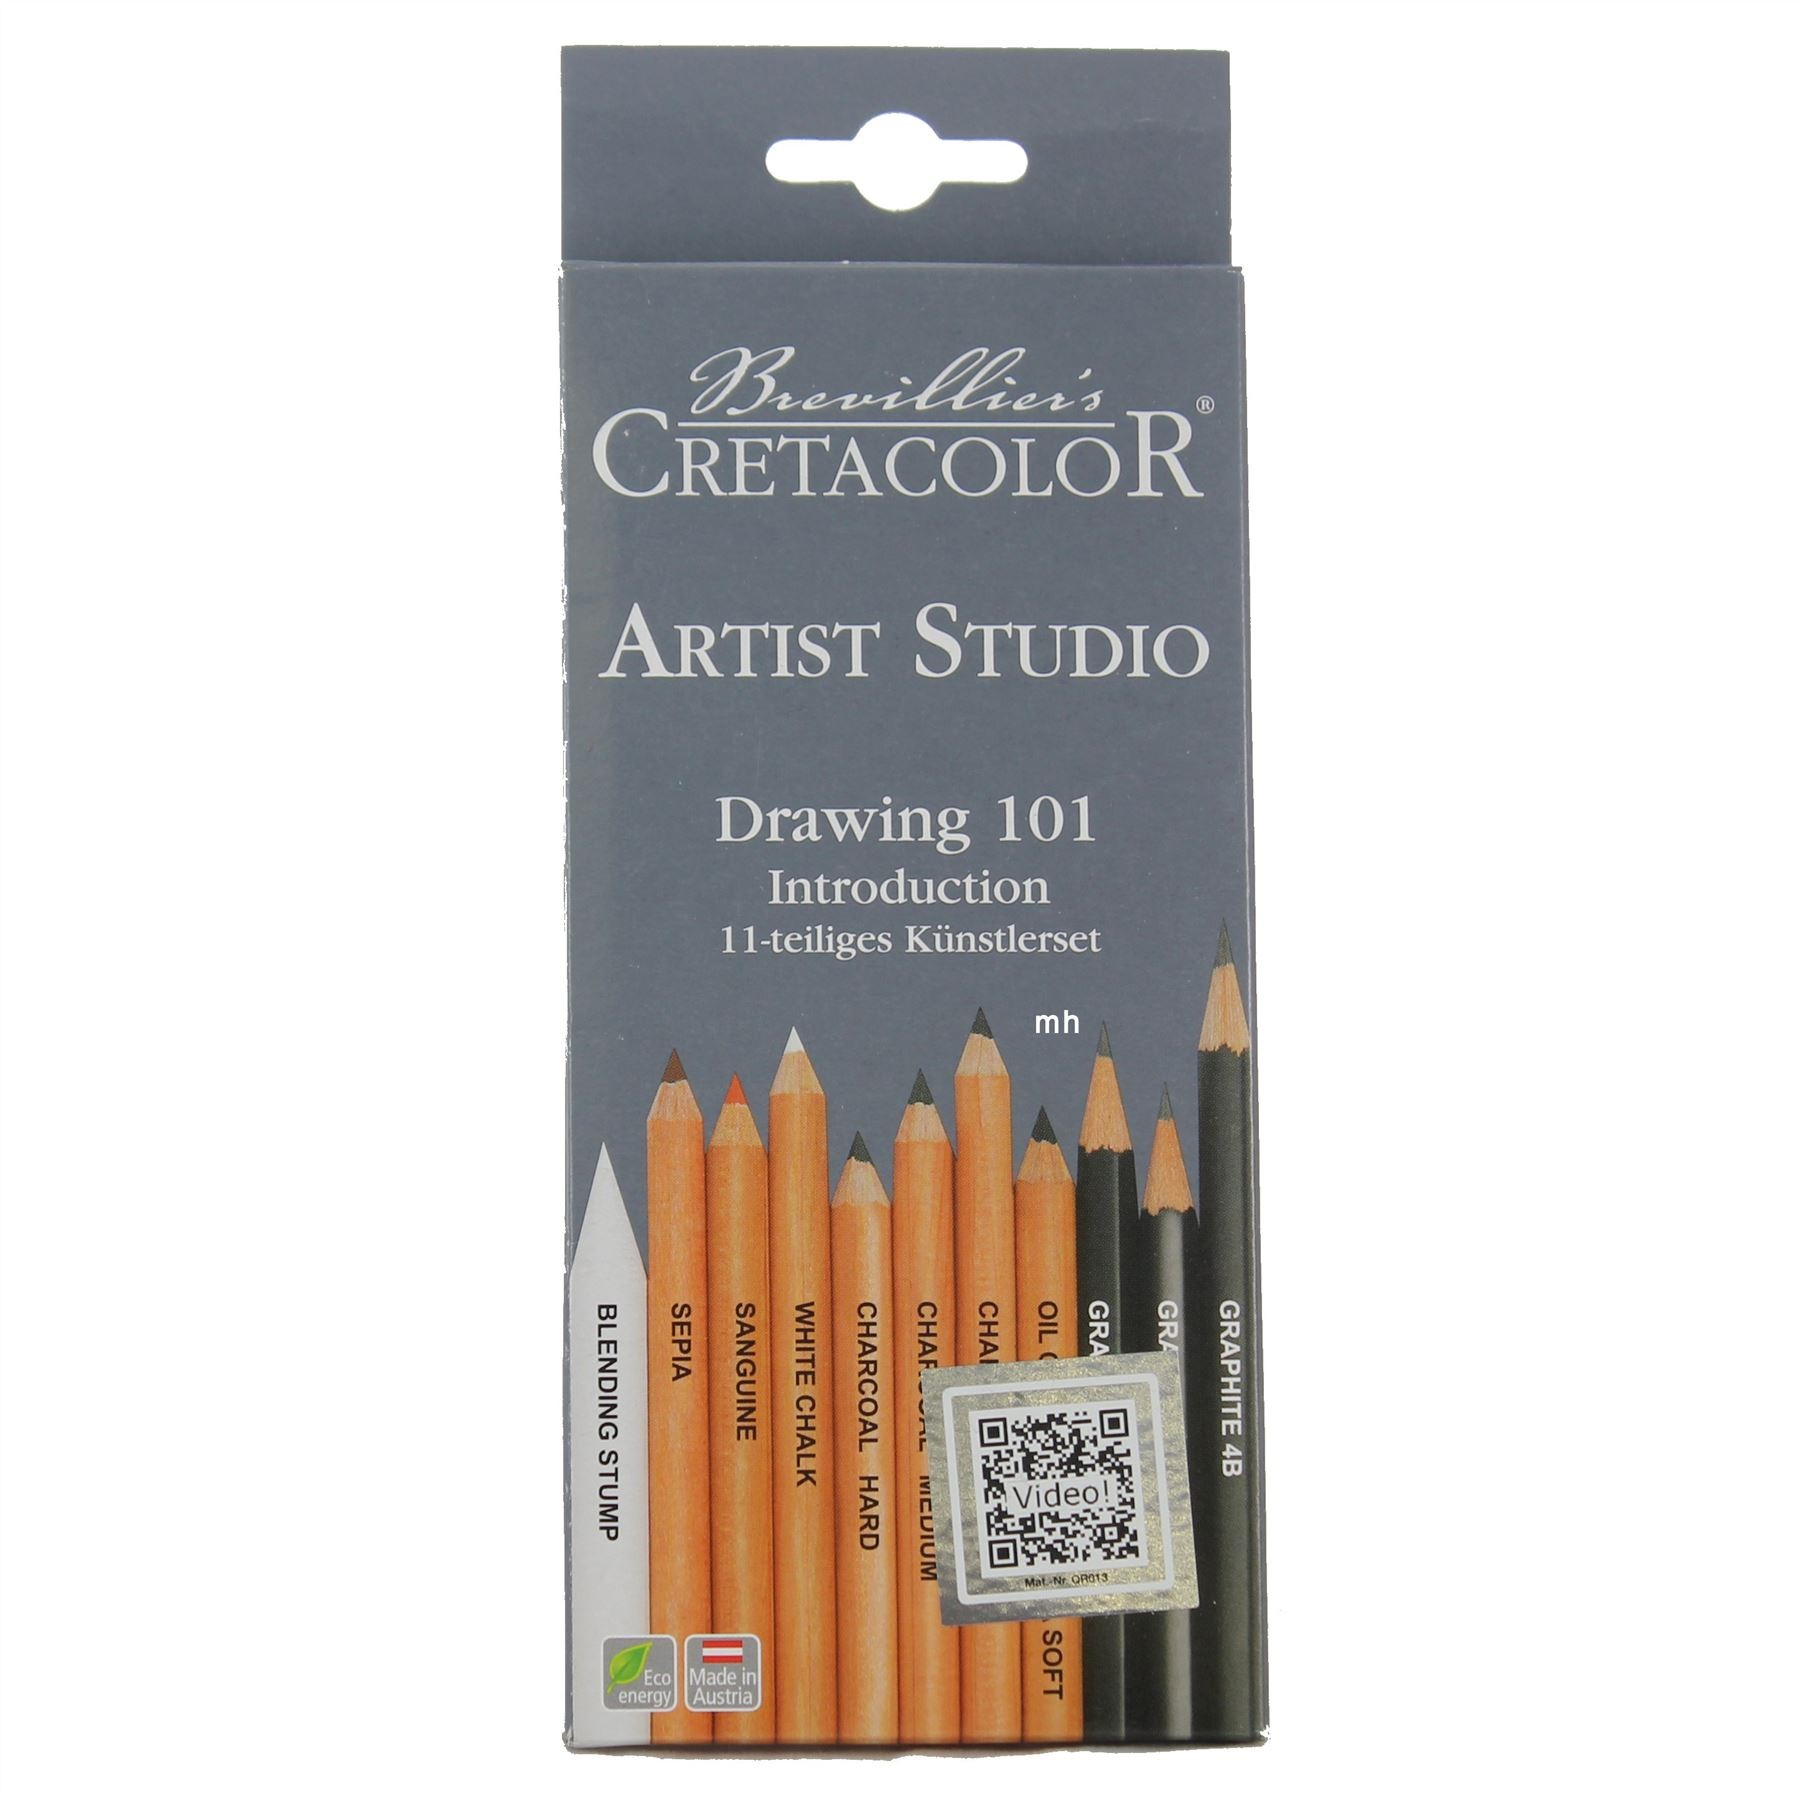 Cretacolor Artist Studio Line Drawing Set 101